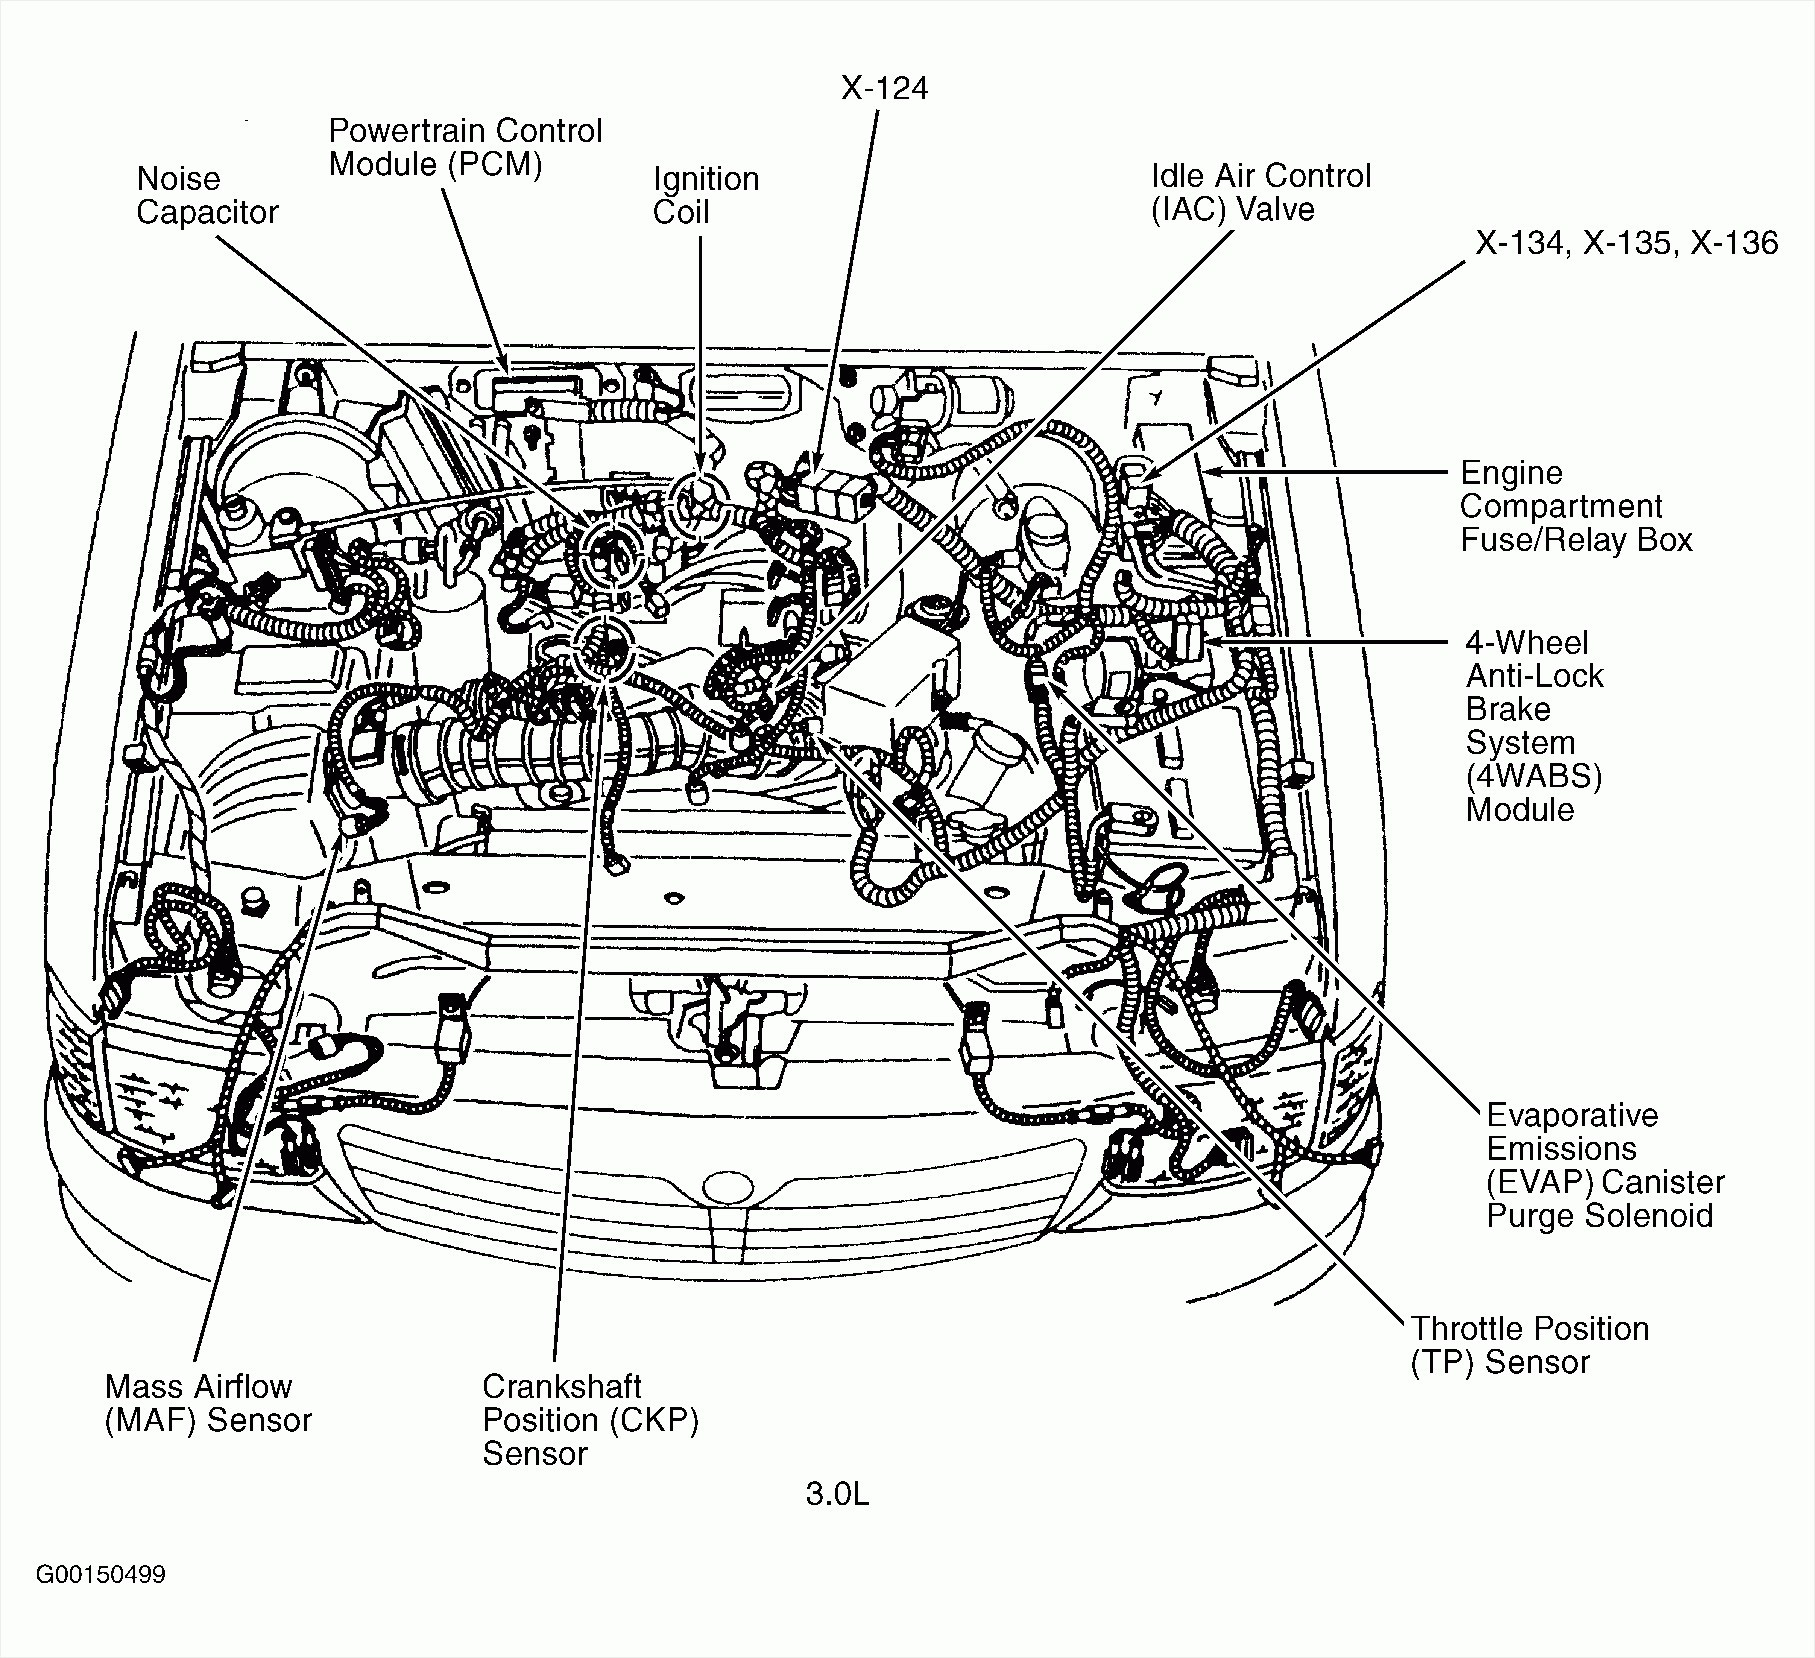 hight resolution of ford 5 4 engine diagram wiring diagram repair guides 2001 f150 5 4 engine diagram